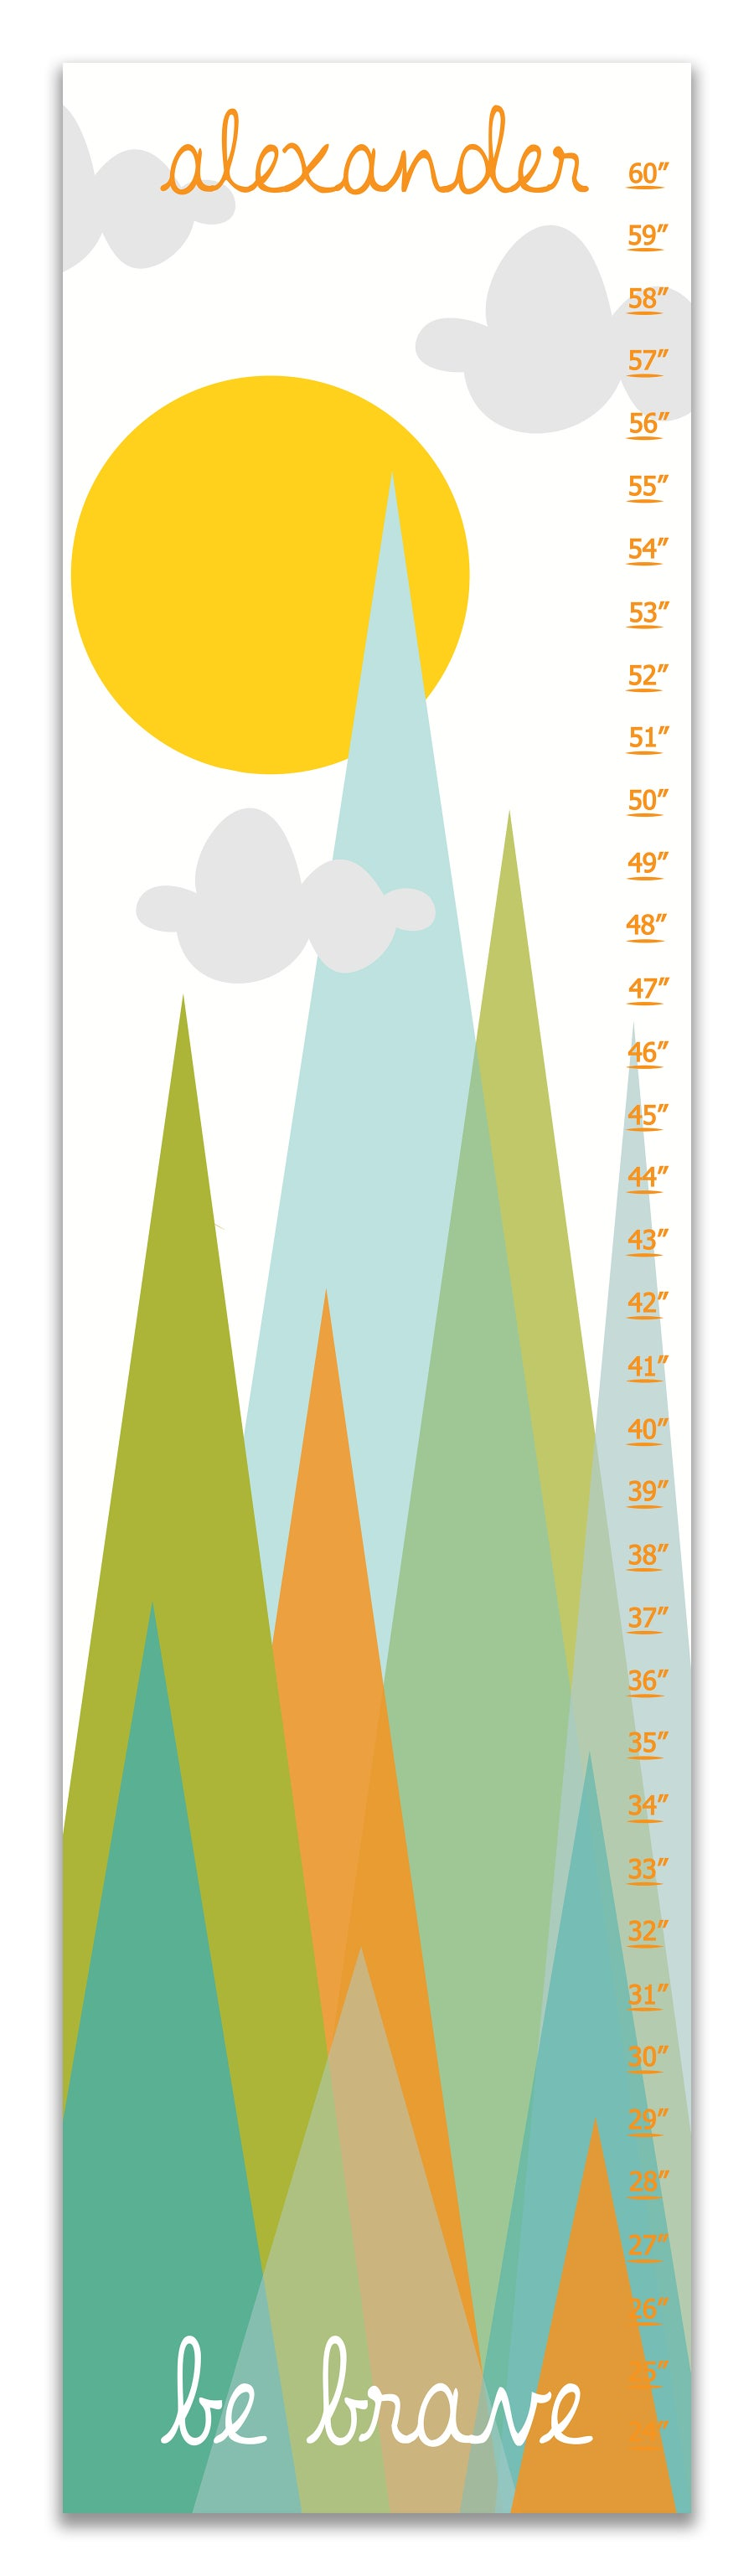 Image of Be Brave Modern Minimal Mountains - Personalized Orange and Green Canvas Growth Chart